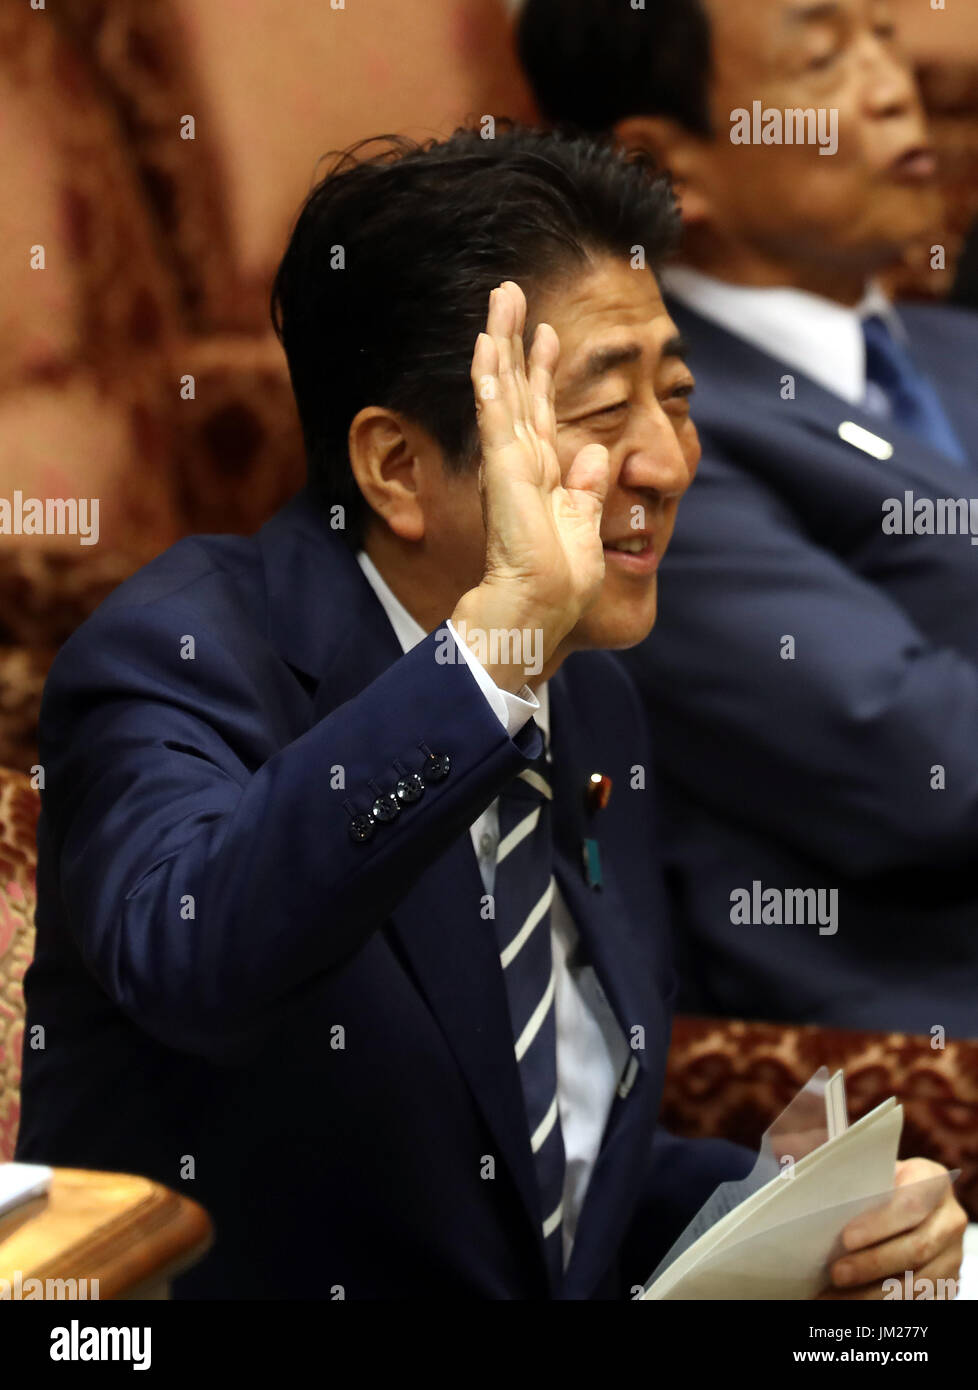 Tokyo, Japan. 25th July, 2017. Japanese Prime Minister Shinzo Abe raises his hand to answer a question by an opposition lawmaker at Upper House's budget committee session at the National Diet in Tokyo on Tuesday, July 25, 2017. Abe said he was not asked by his friend Kotaro Kake for help in opening a new university department in Imabari. Credit: Yoshio Tsunoda/AFLO/Alamy Live News - Stock Image